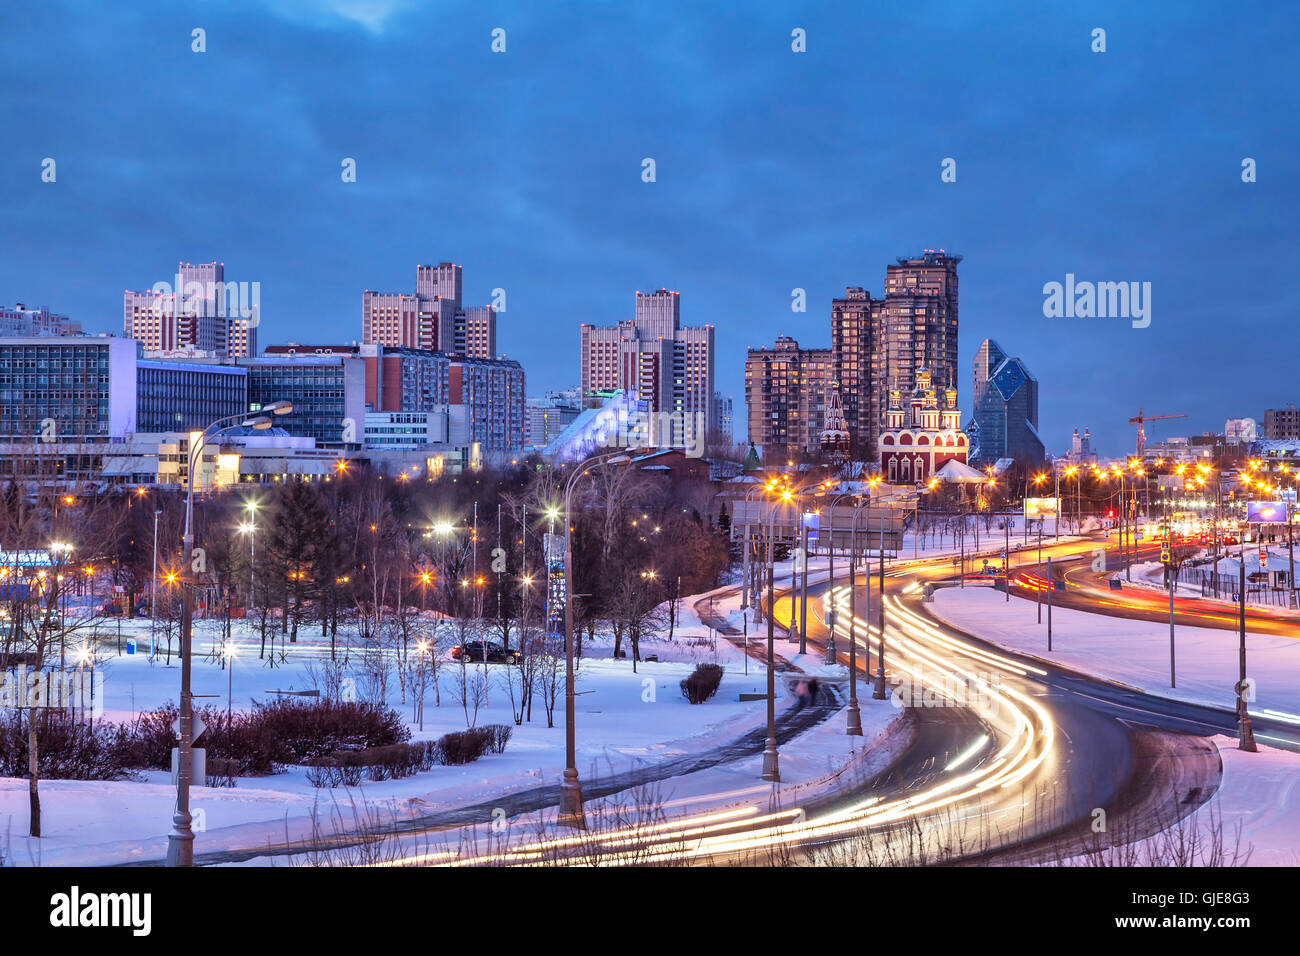 Troparevo district in the winter evening, Moscow, Russia - Stock Image